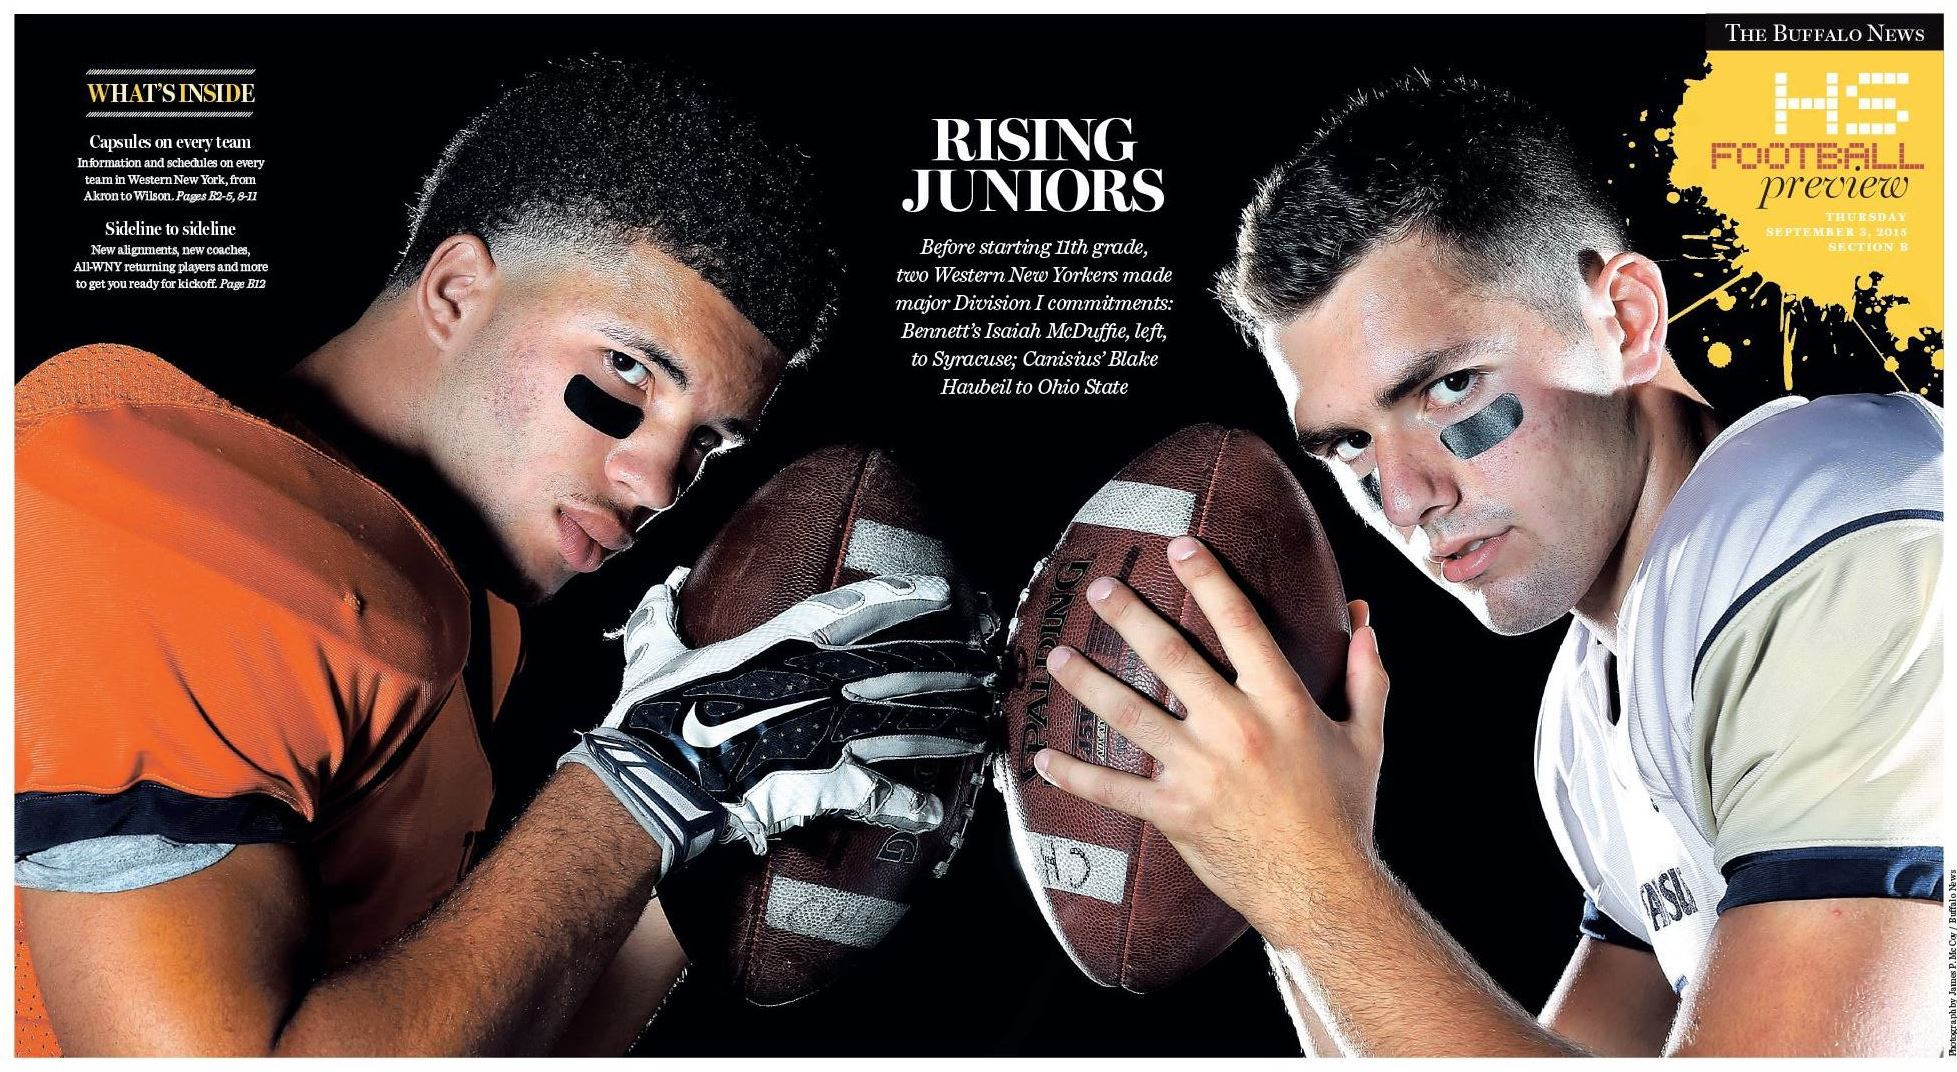 Our 2015 high school football preview cover. (Photo by James P. McCoy; design by Jason Baum)